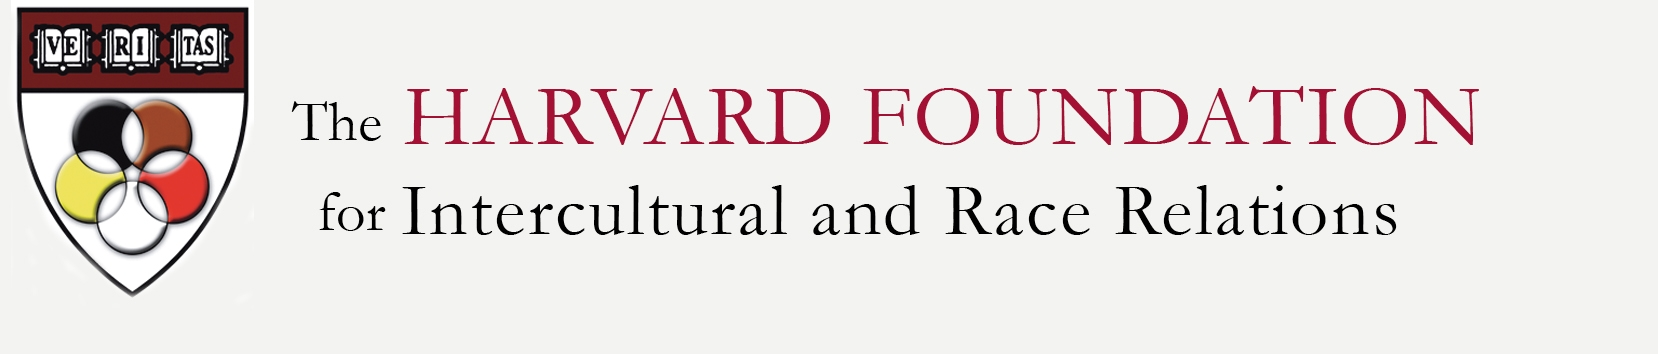 The Harvard Foundation